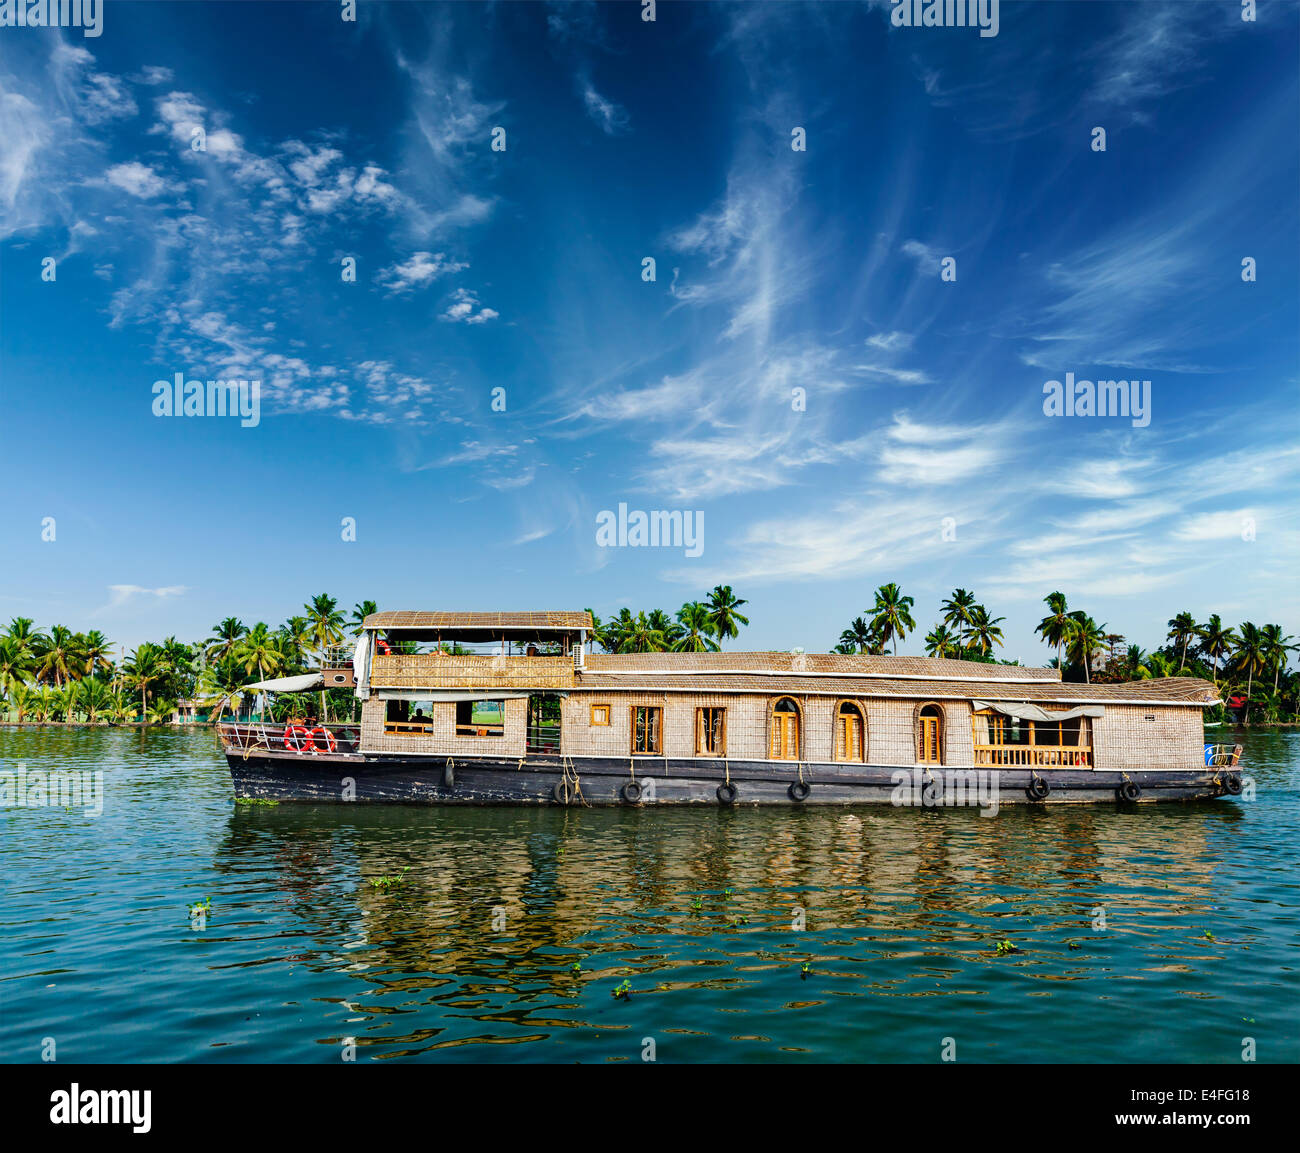 South India House Boat Stock Photos & South India House